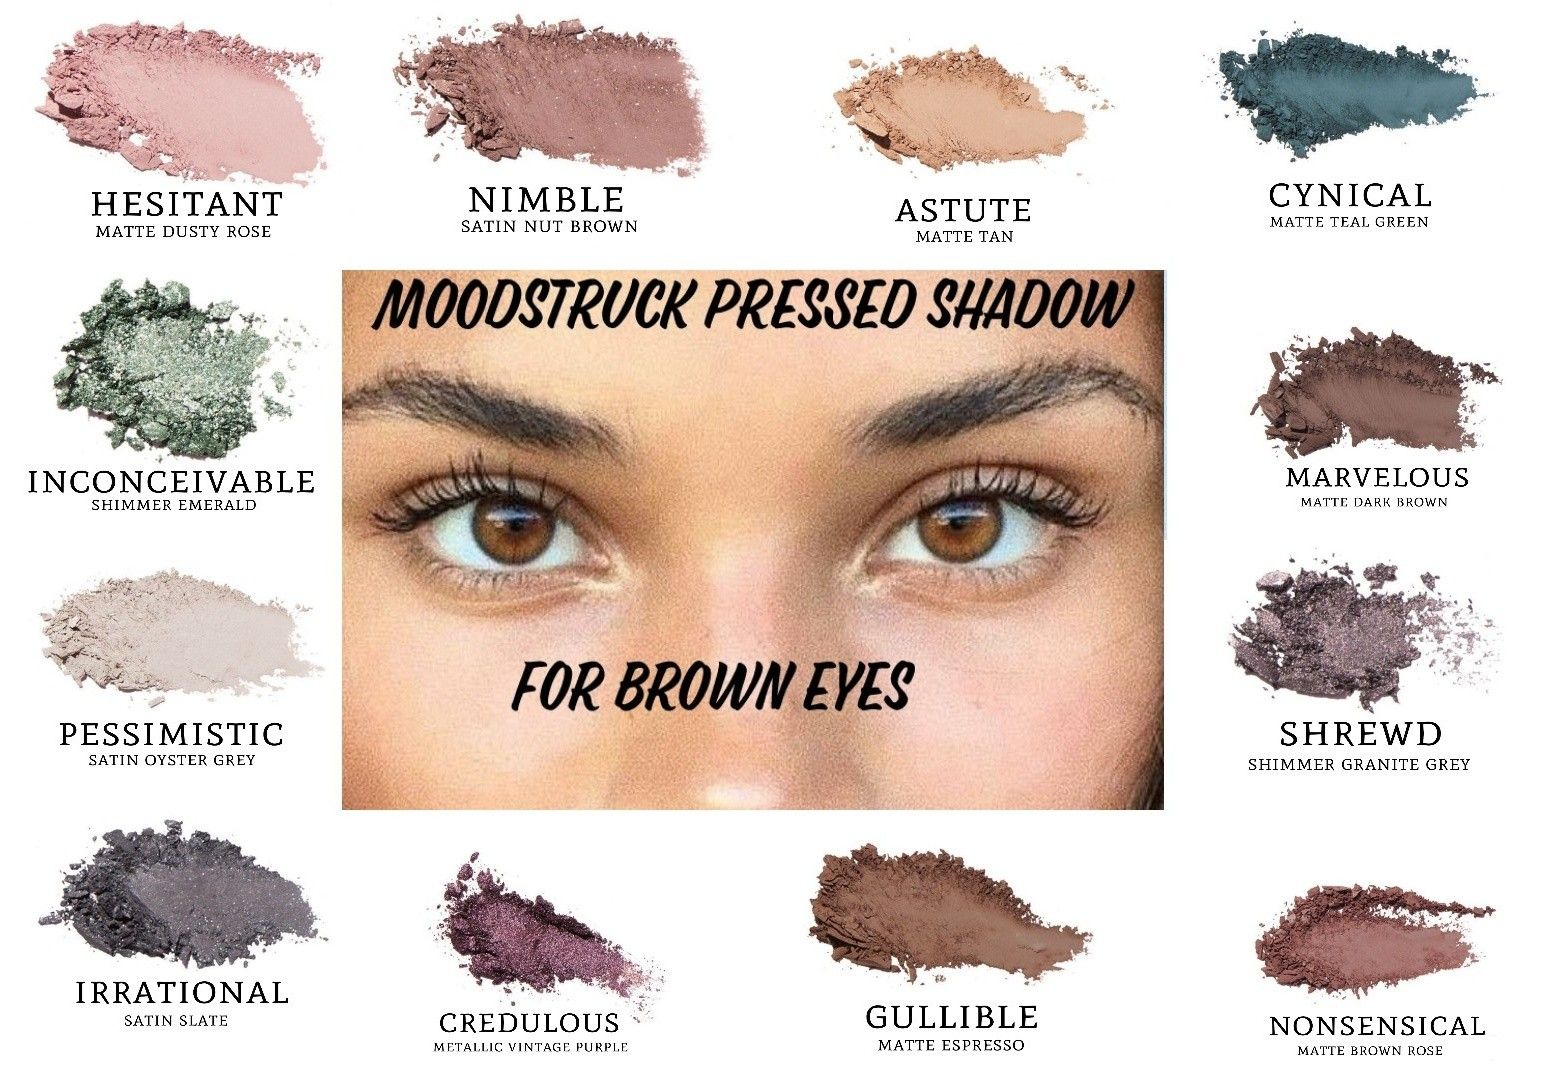 Do You Have Brown Eyes These Are Some Of The Moodstruck Pressed